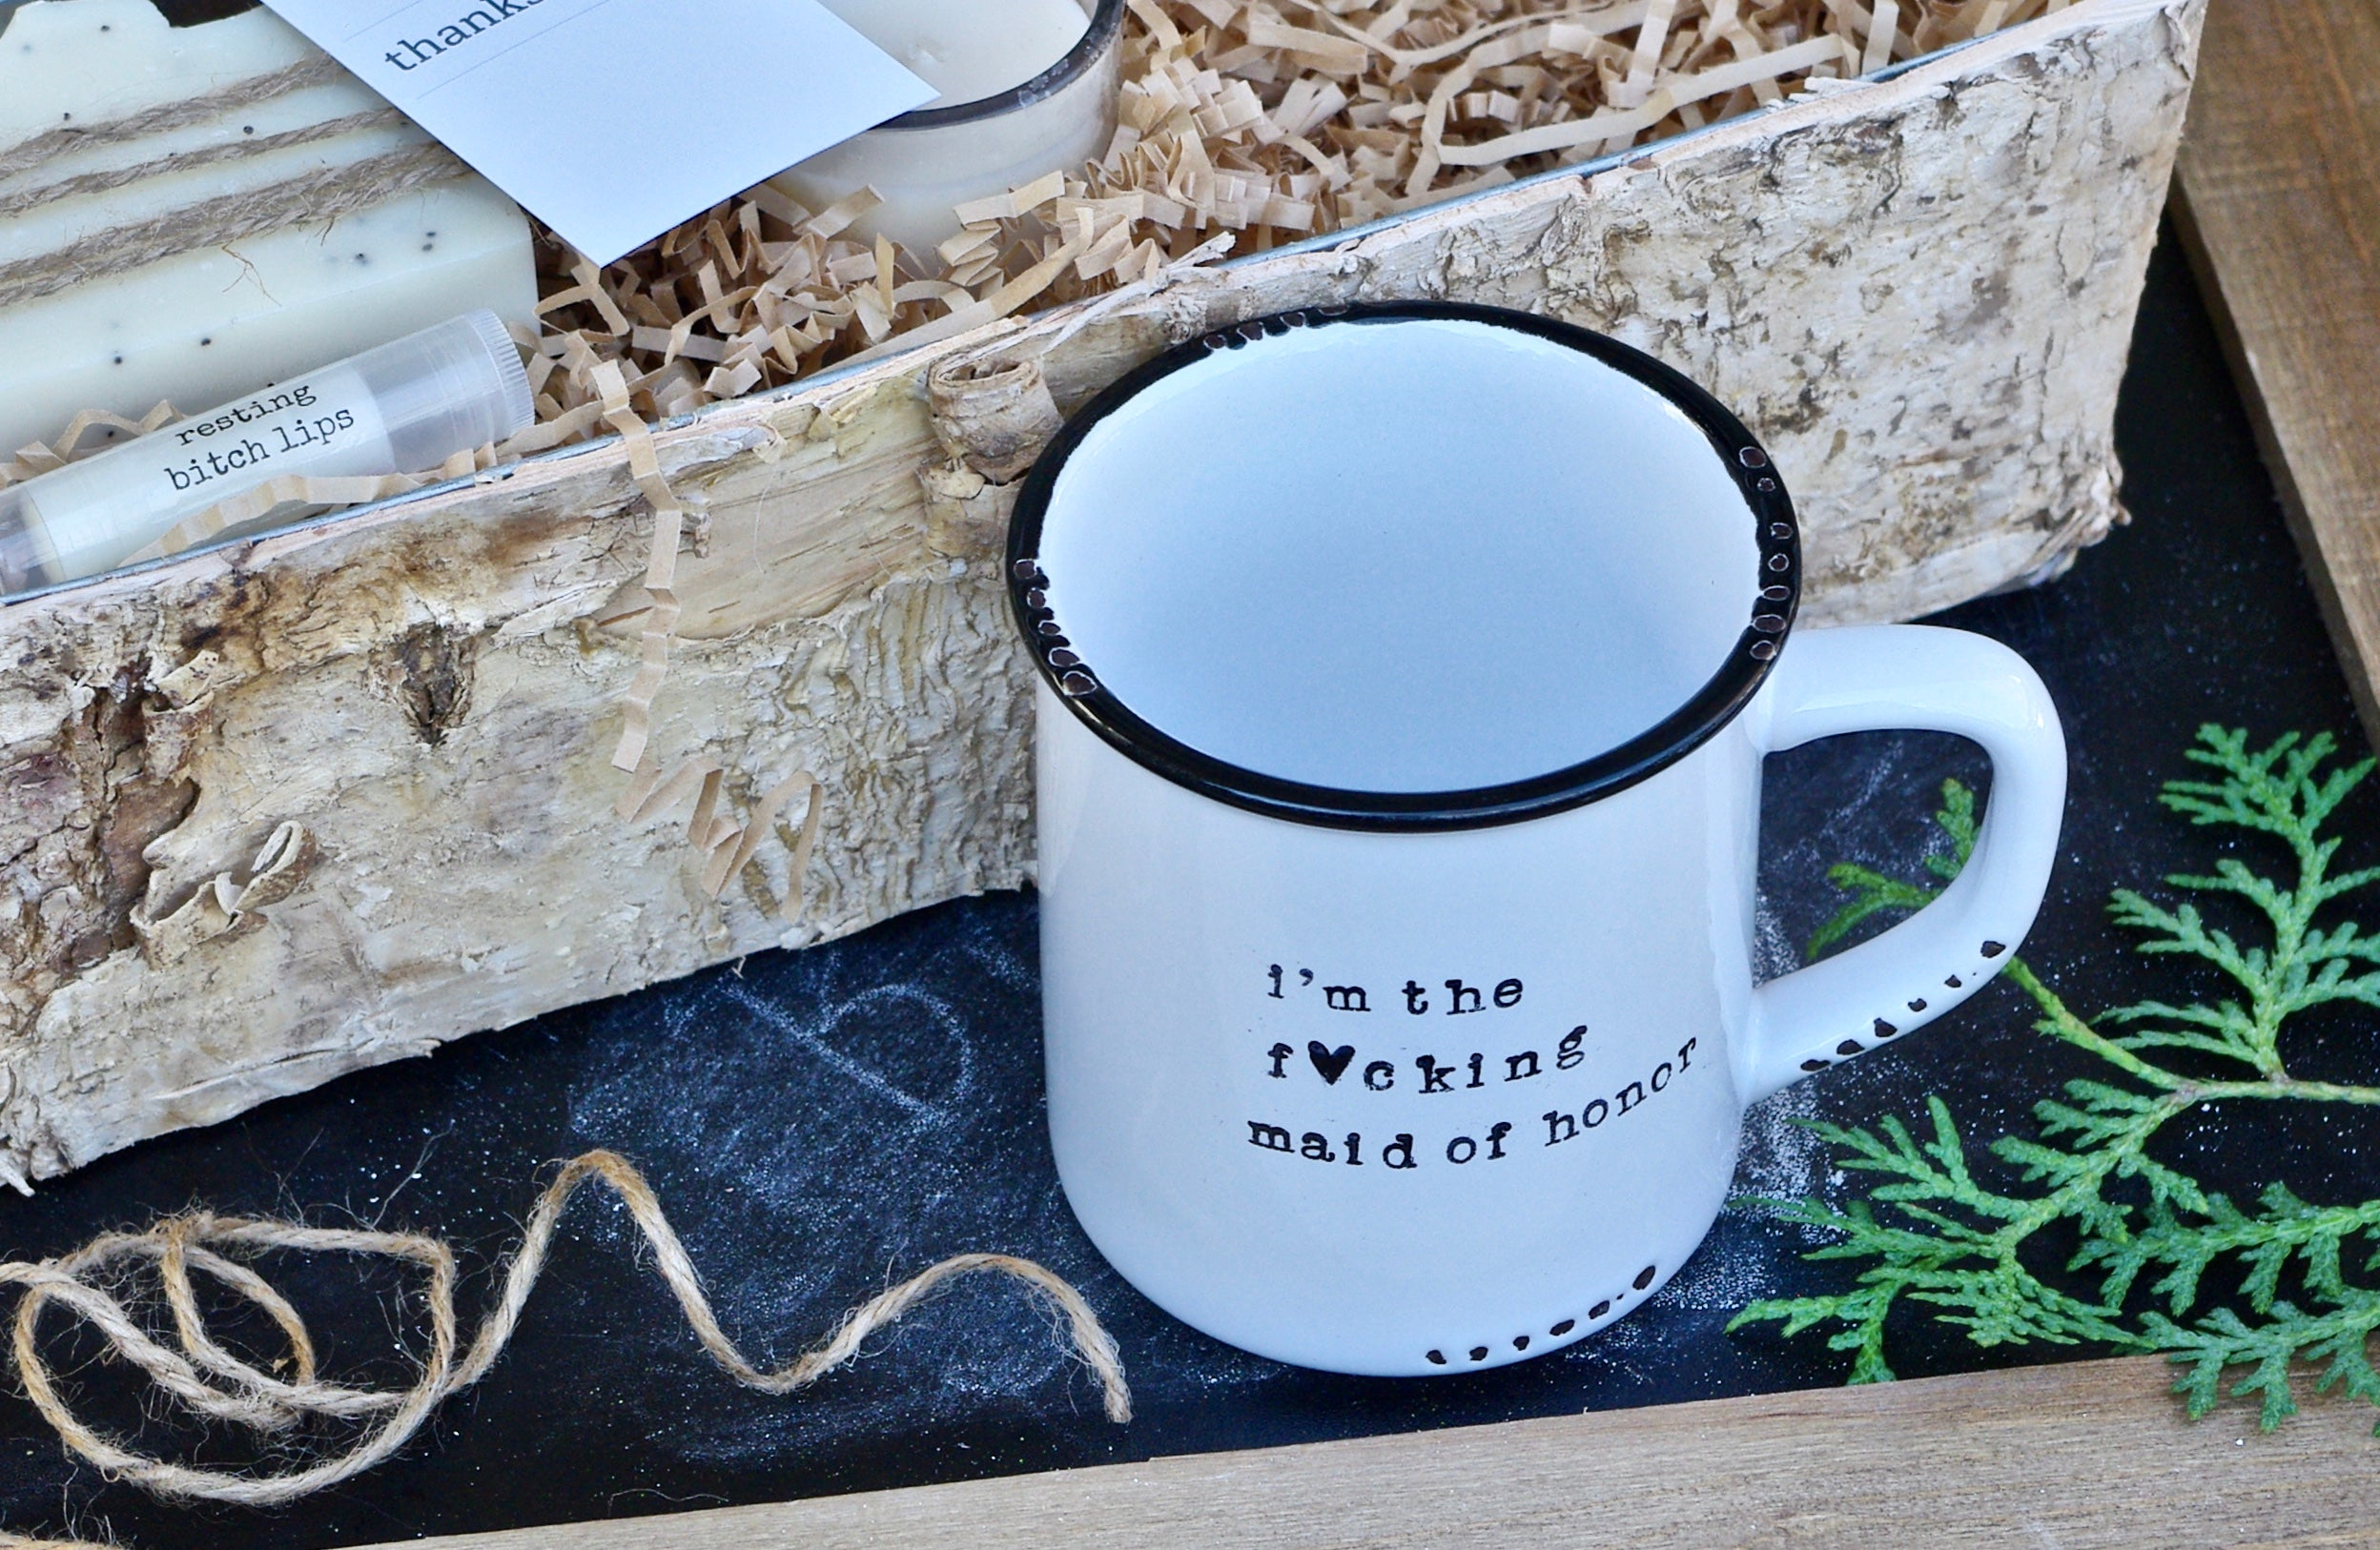 maid of honor mug wedding will you be my maid of honor mug maid of honor proposal